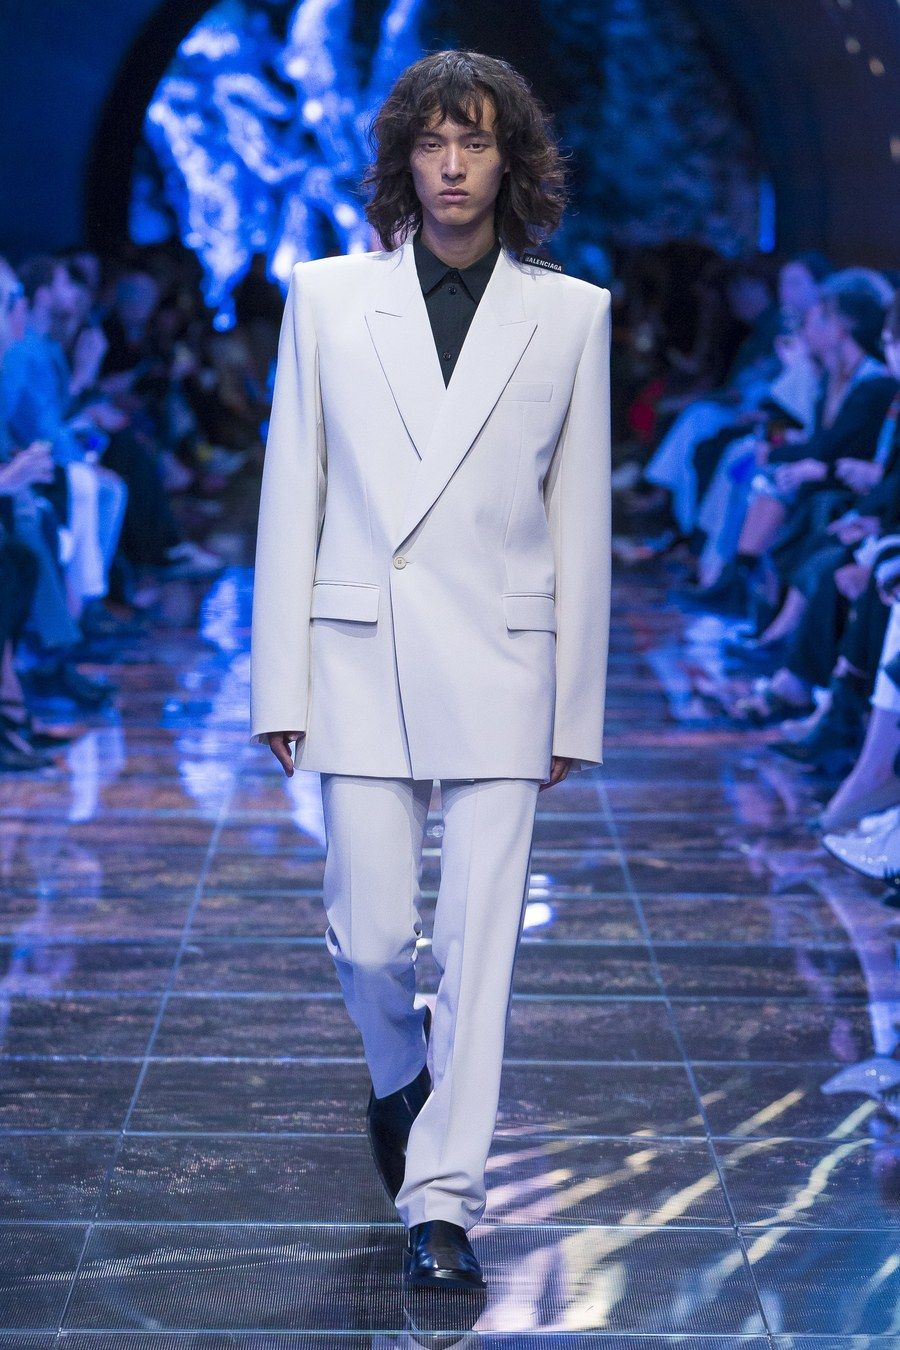 c7c3efdef527 Balenciaga Spring 2019 Ready-to-Wear collection, runway looks, beauty,  models, and reviews.